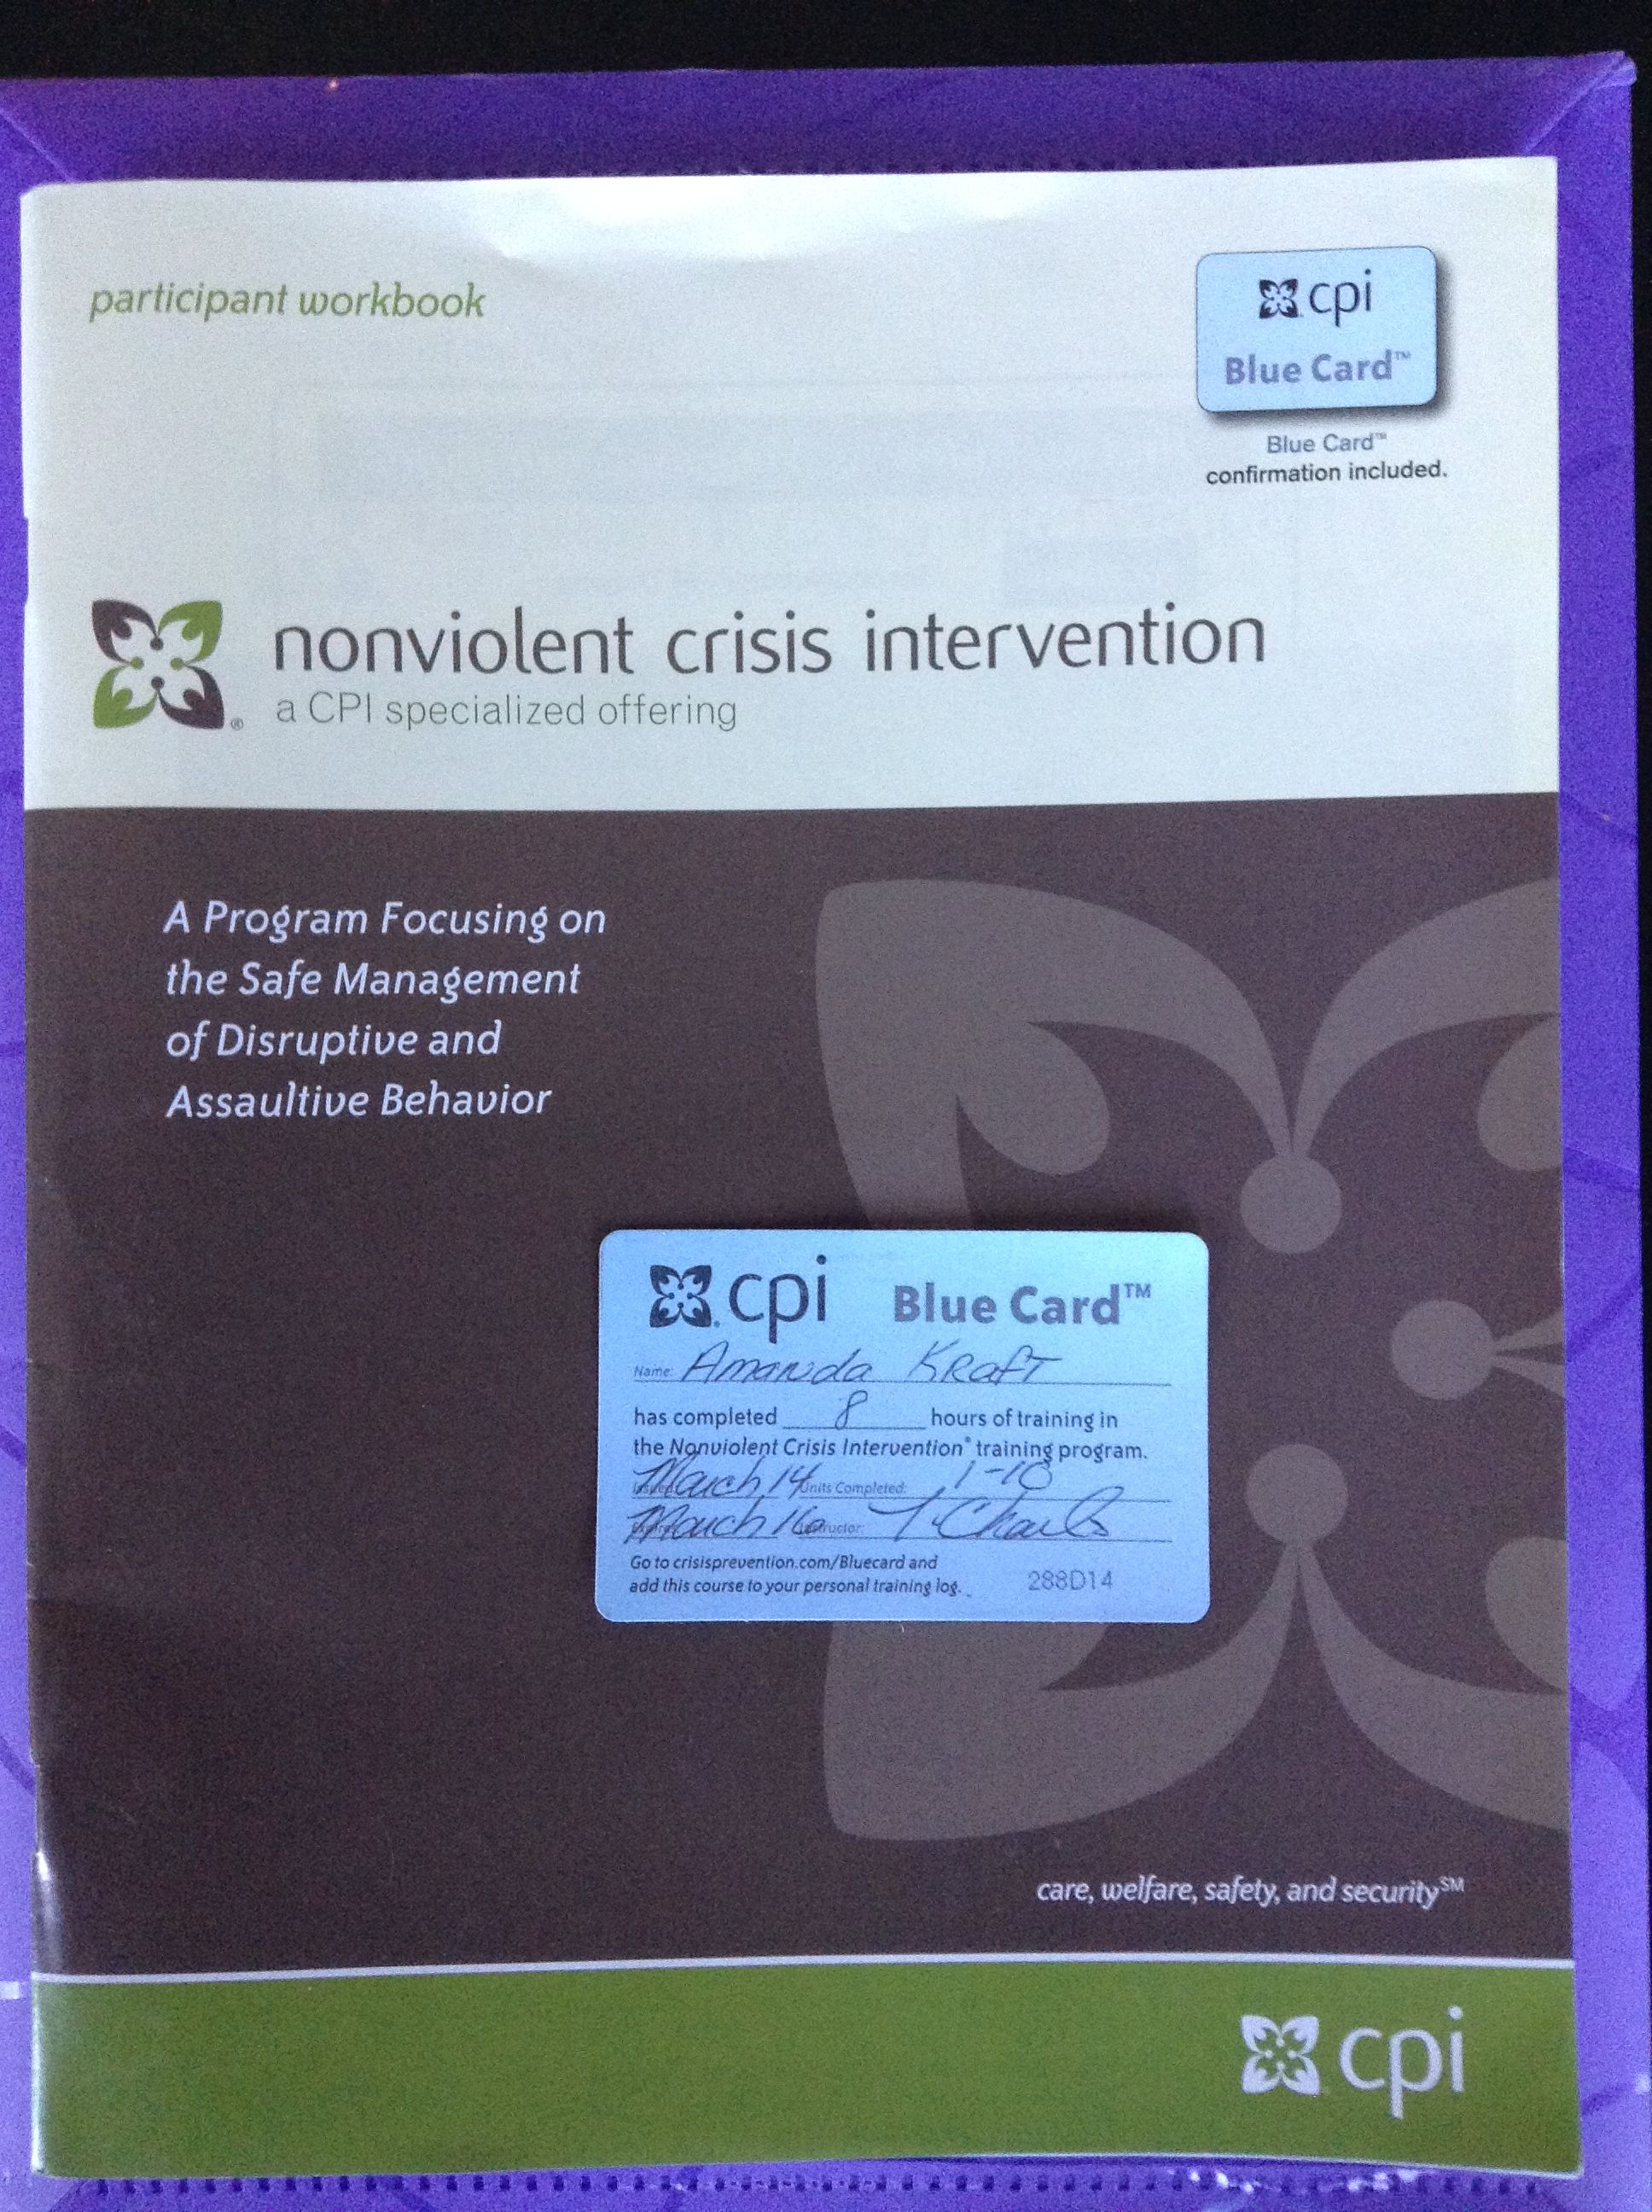 This Is My Certification Card From The Non Violent Crisis